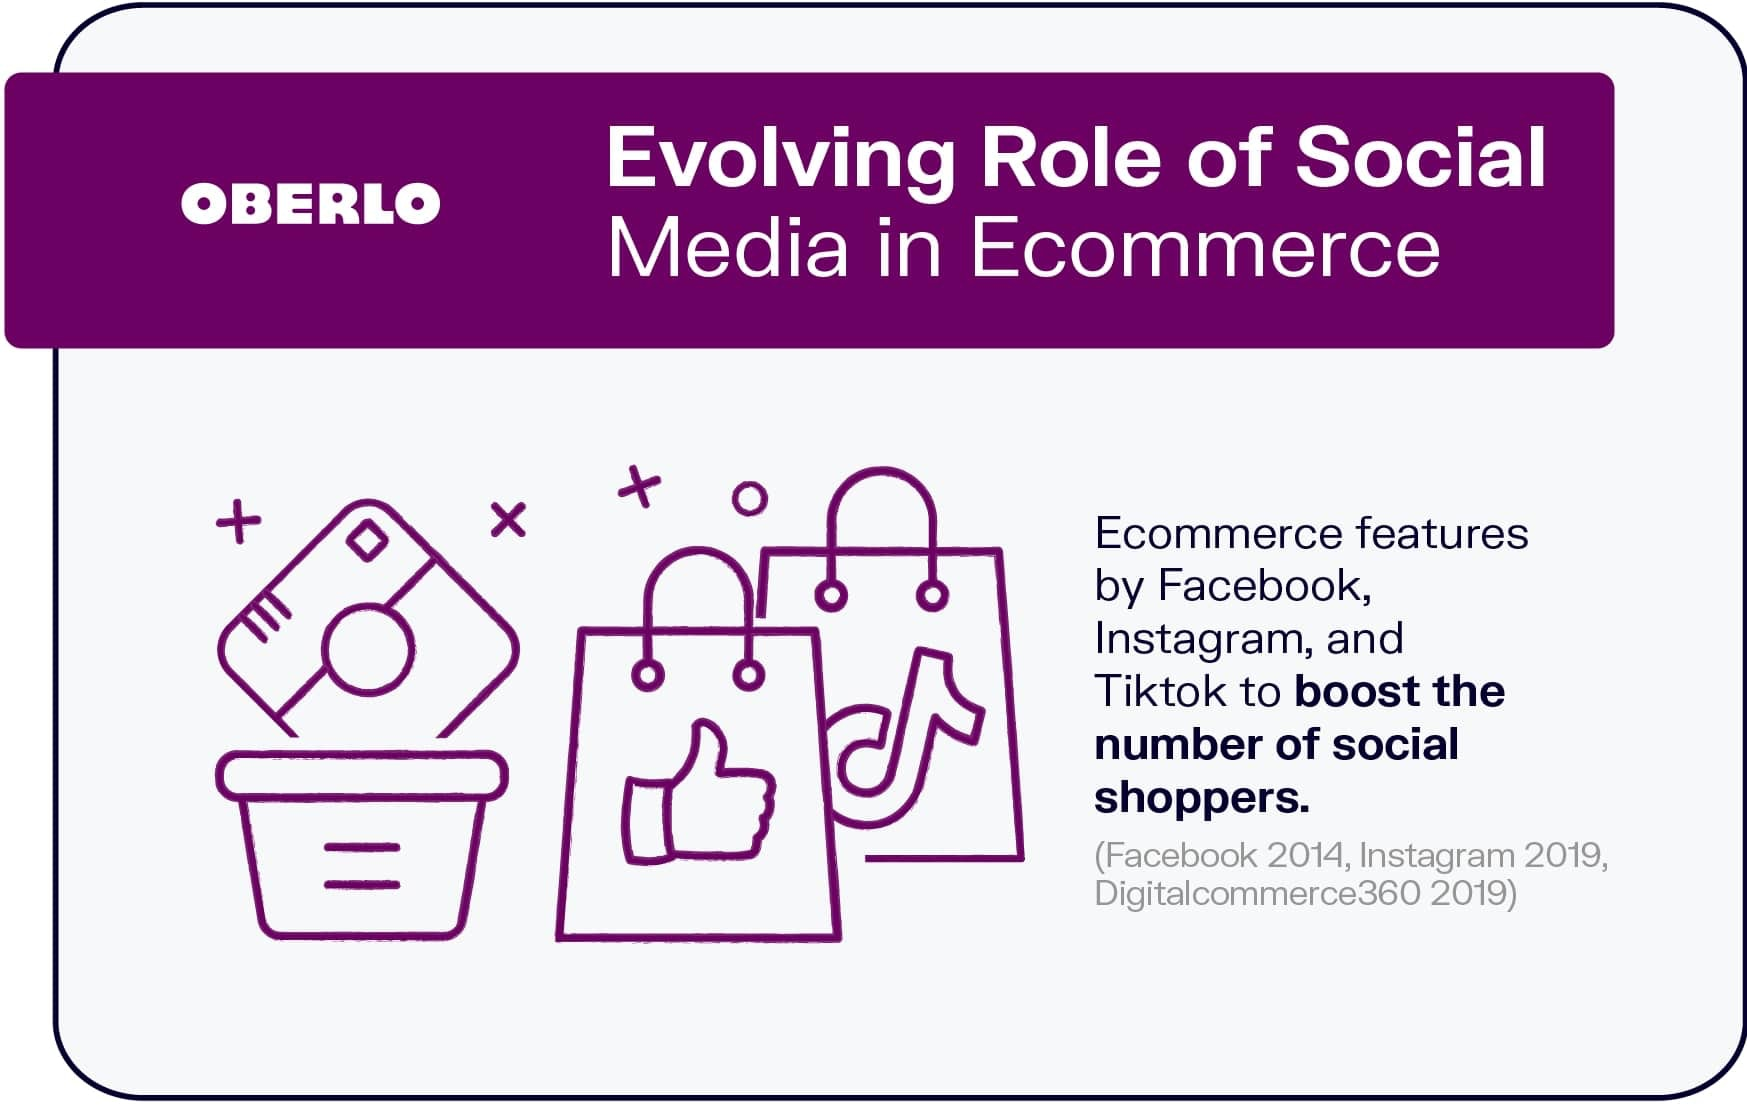 Evolving Role of Social Media in Ecommerce